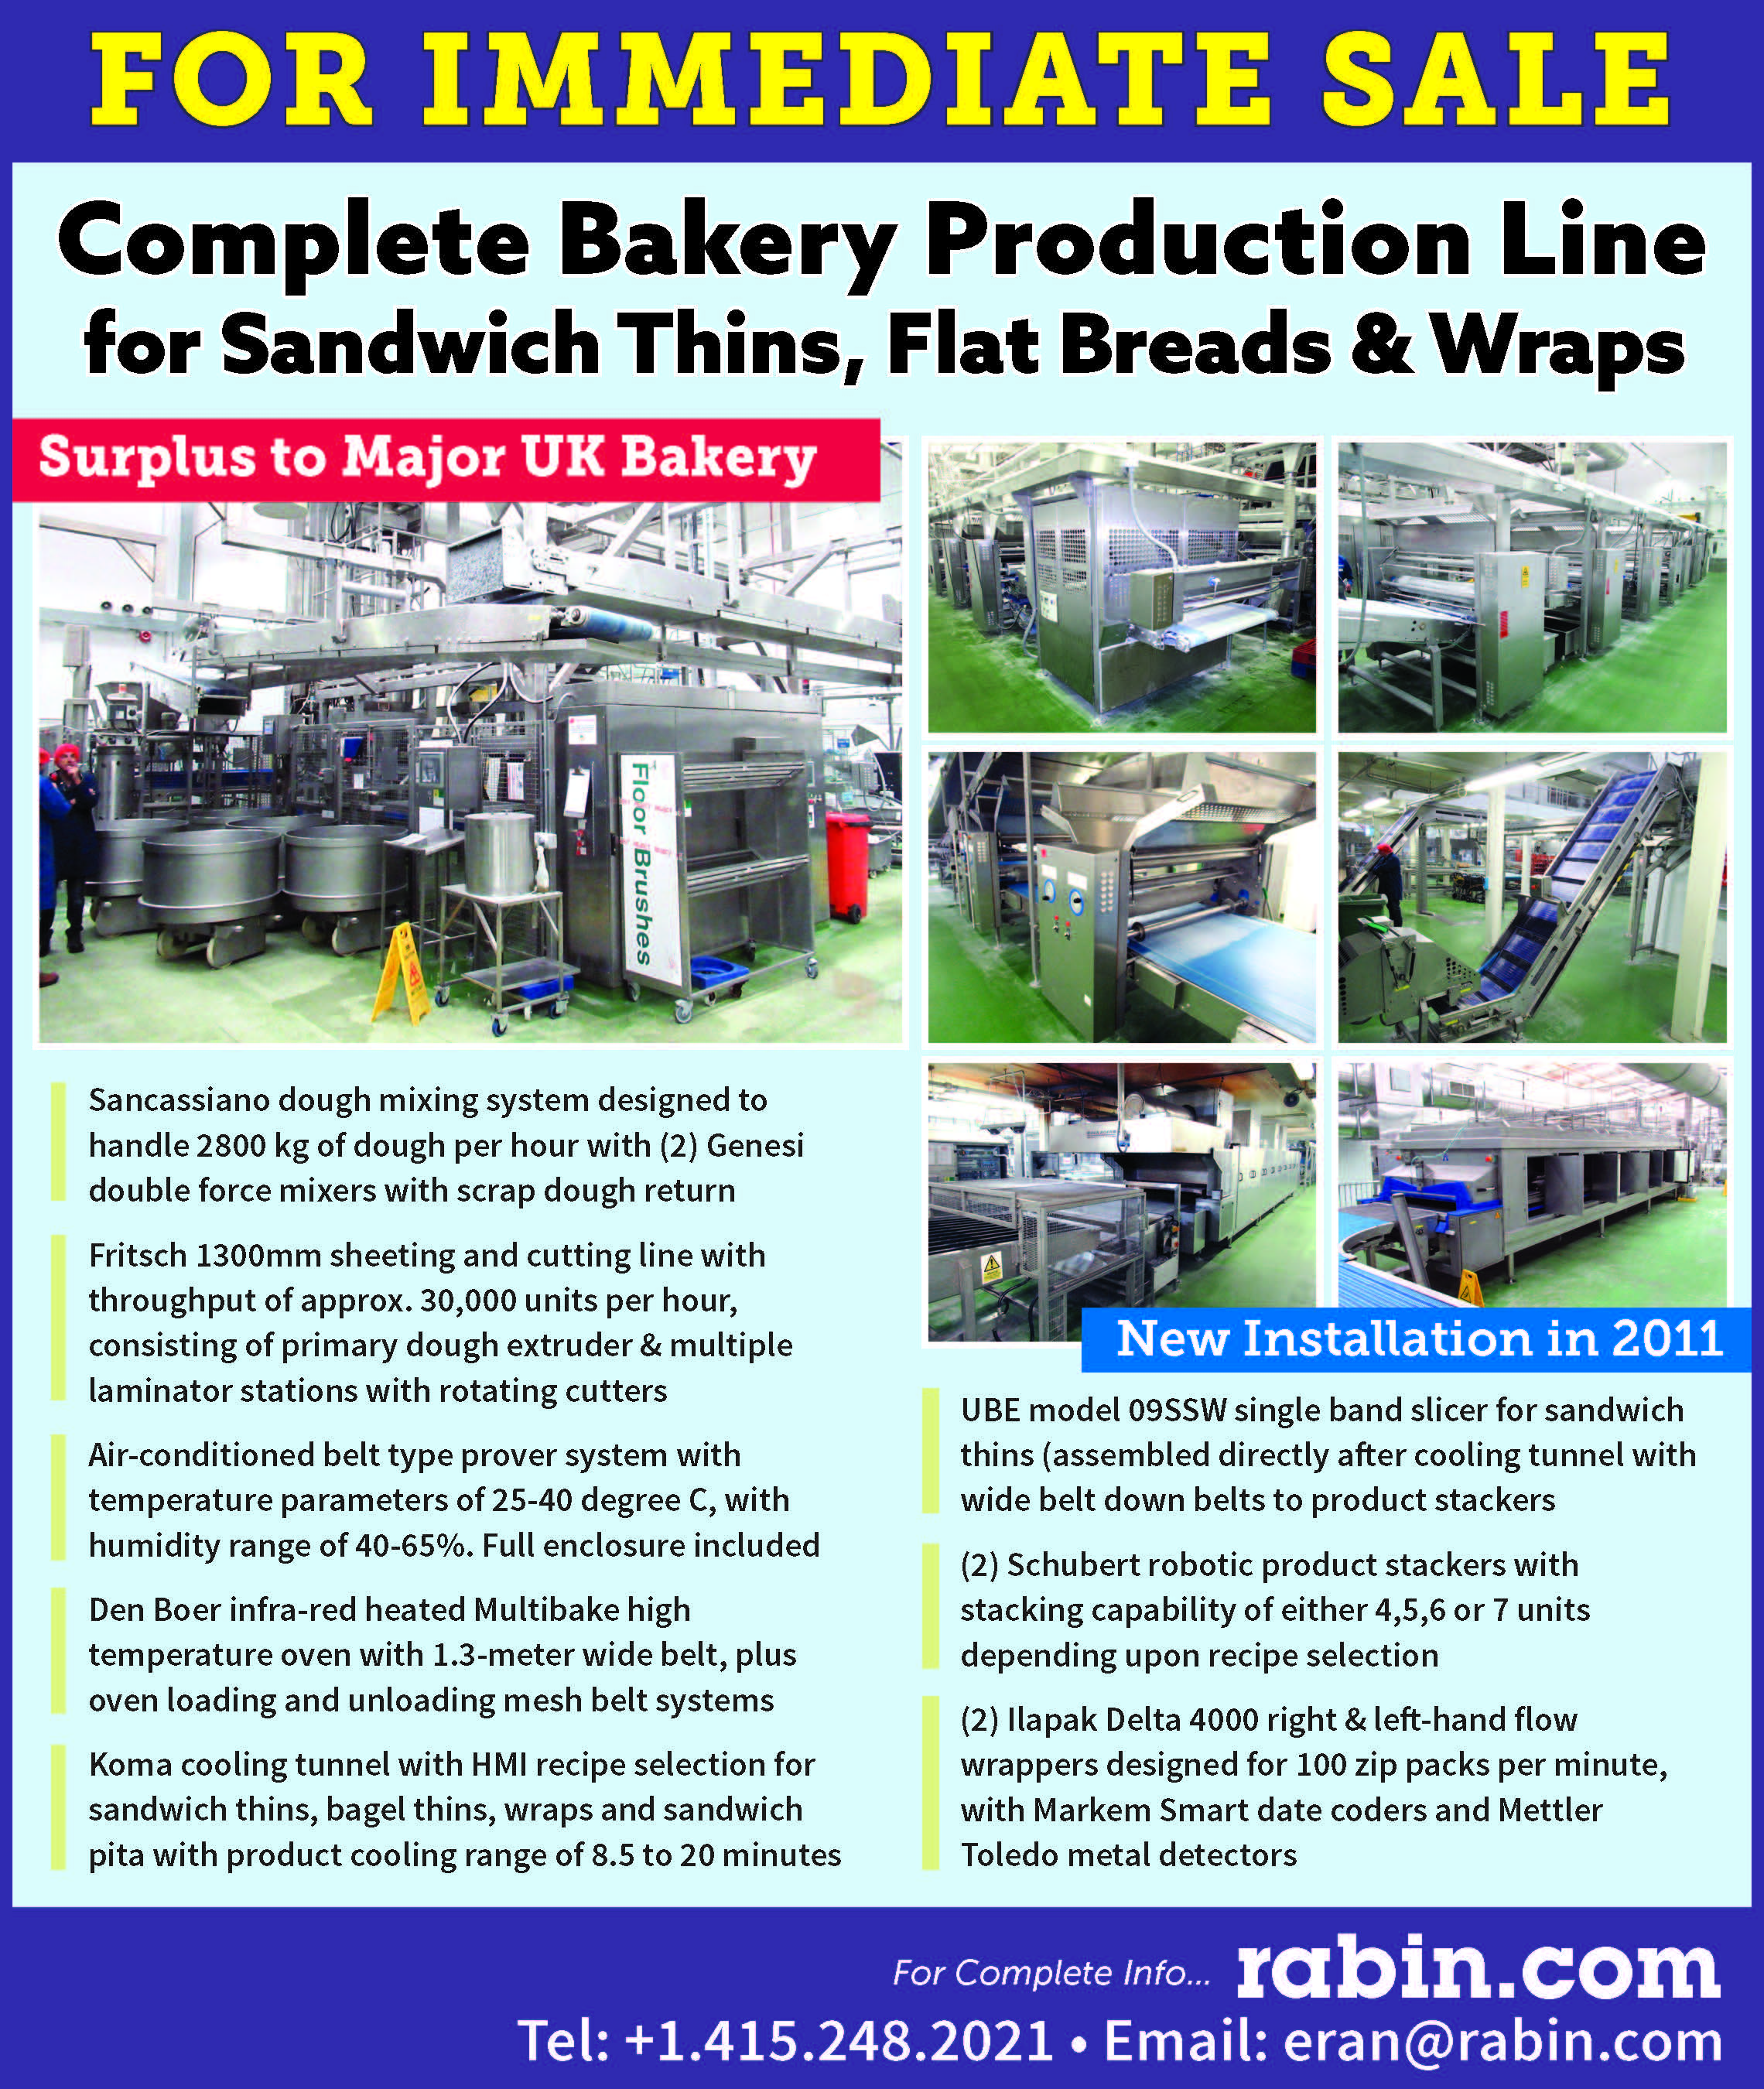 Complete Bakery Production Line for Sandwich Thins, Flat Breads & Wraps